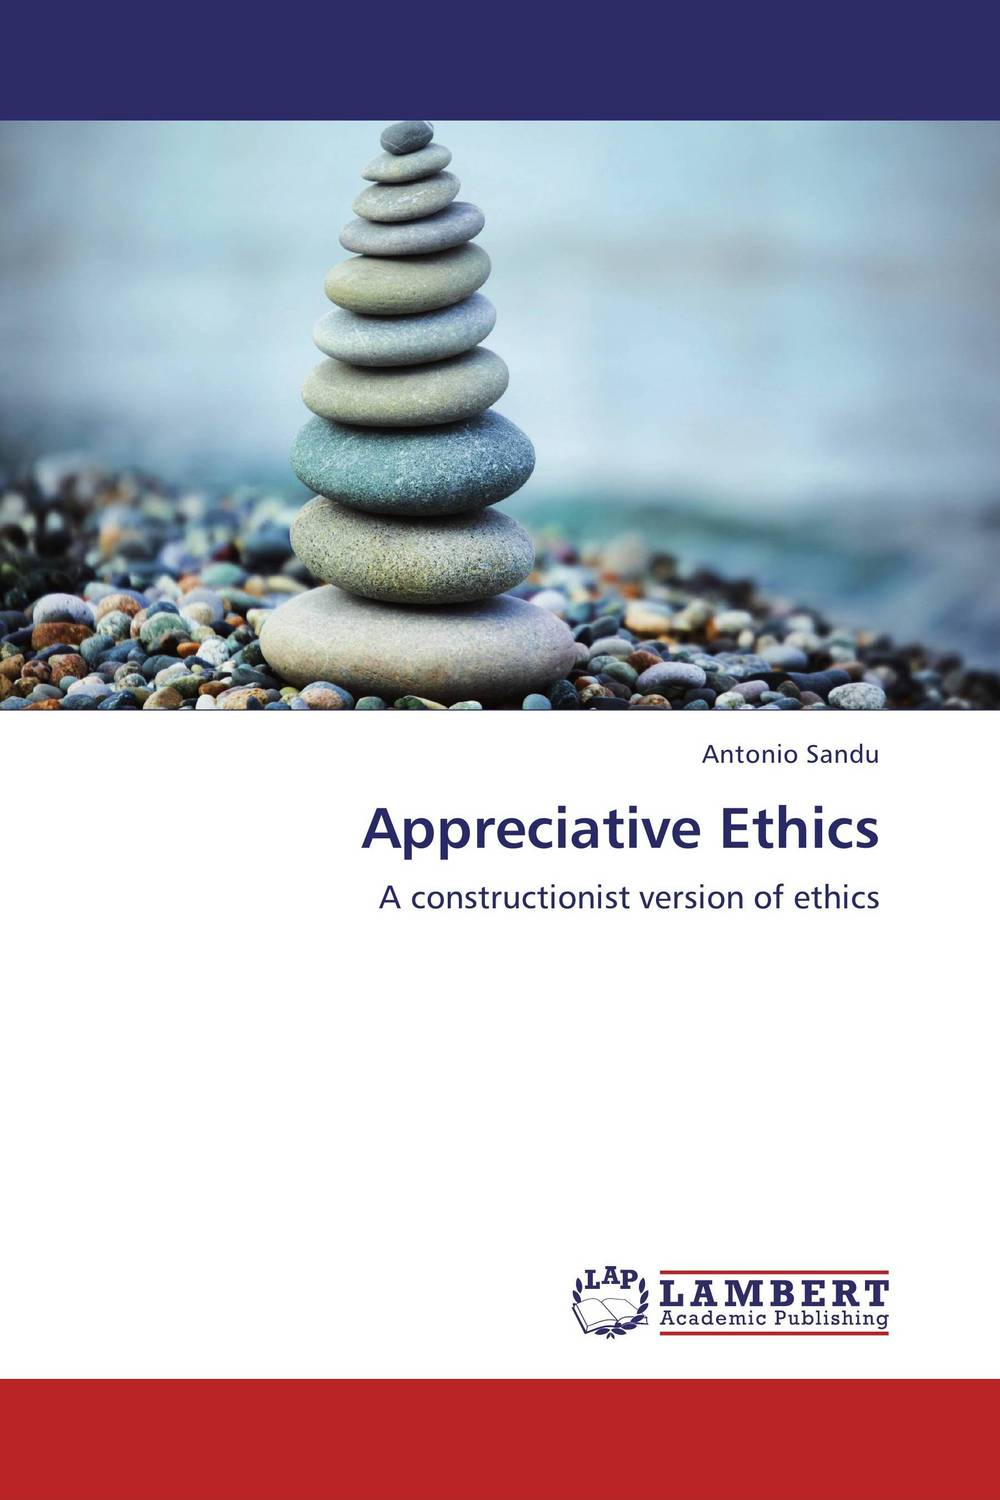 Appreciative Ethics статуэтка африканка федерация статуэтка африканка